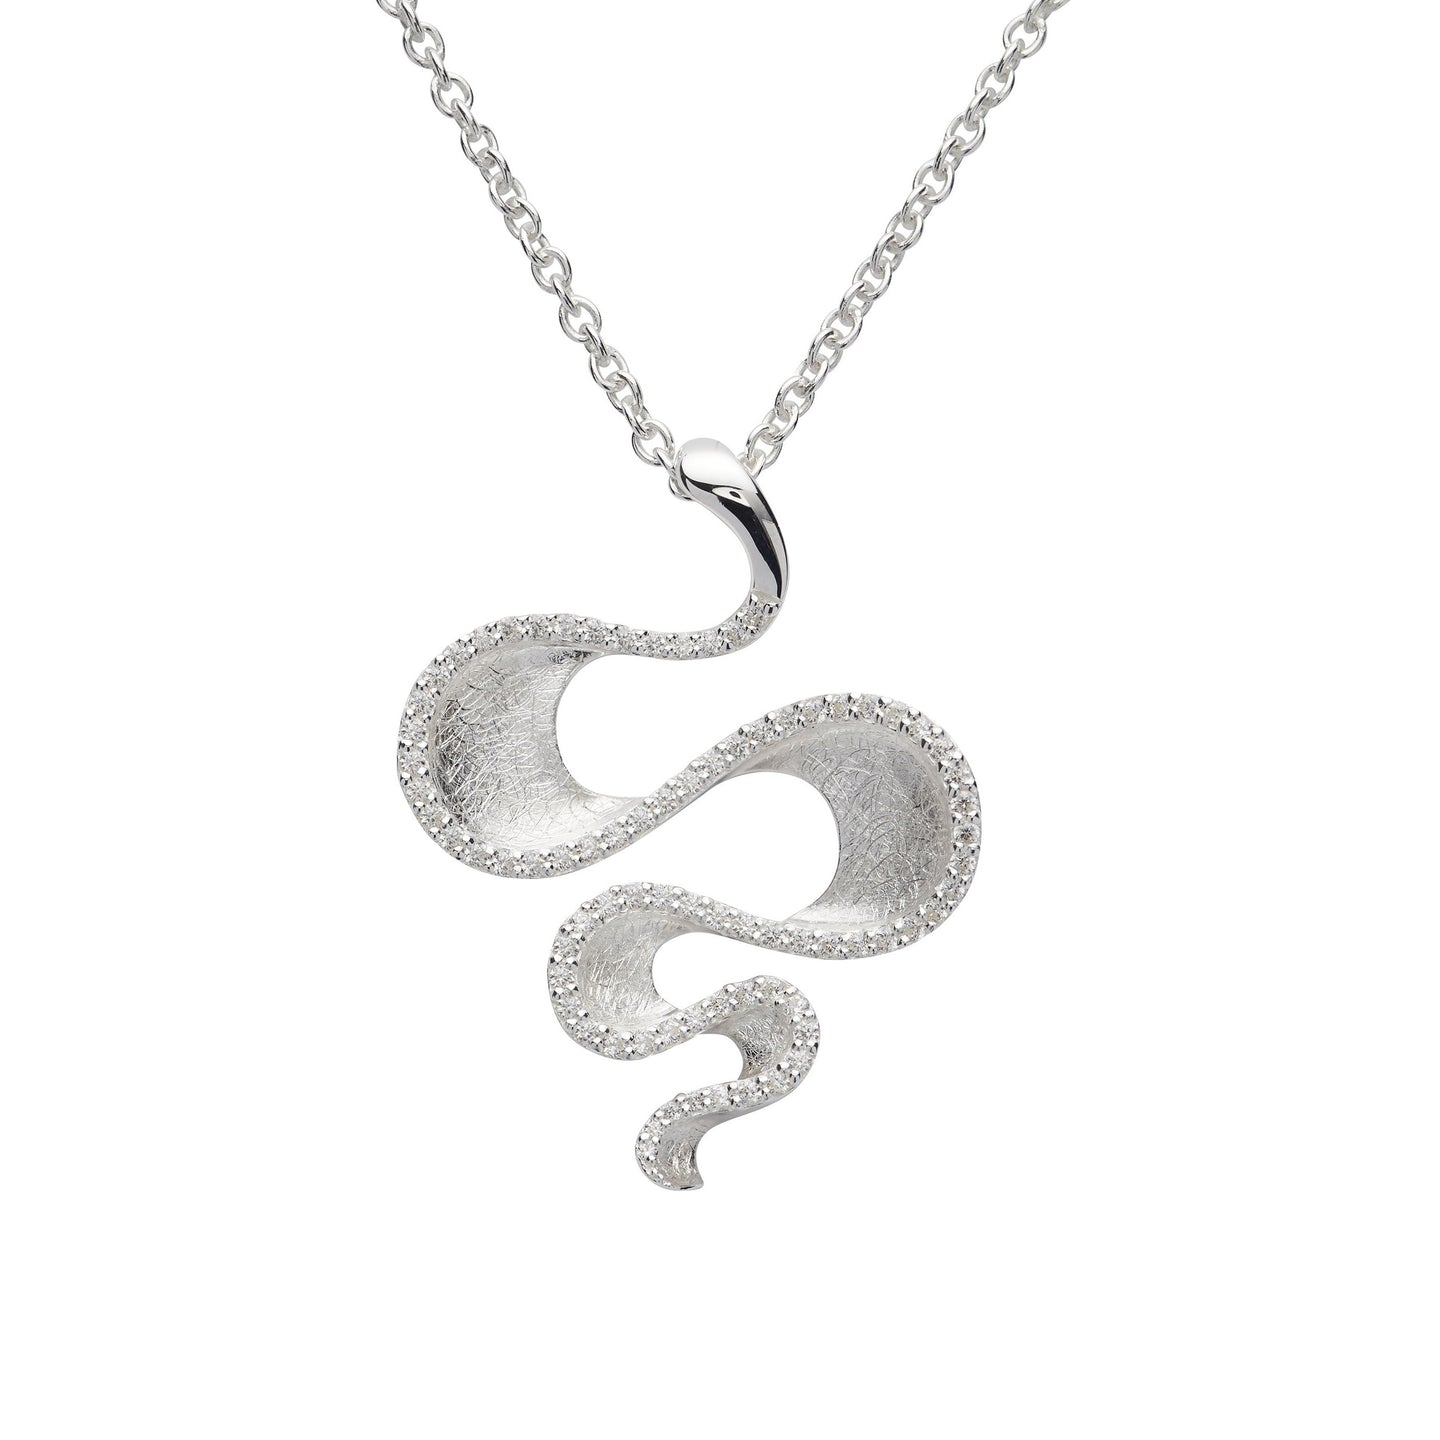 Silver Snake Shape Pendant with Chain MK-742